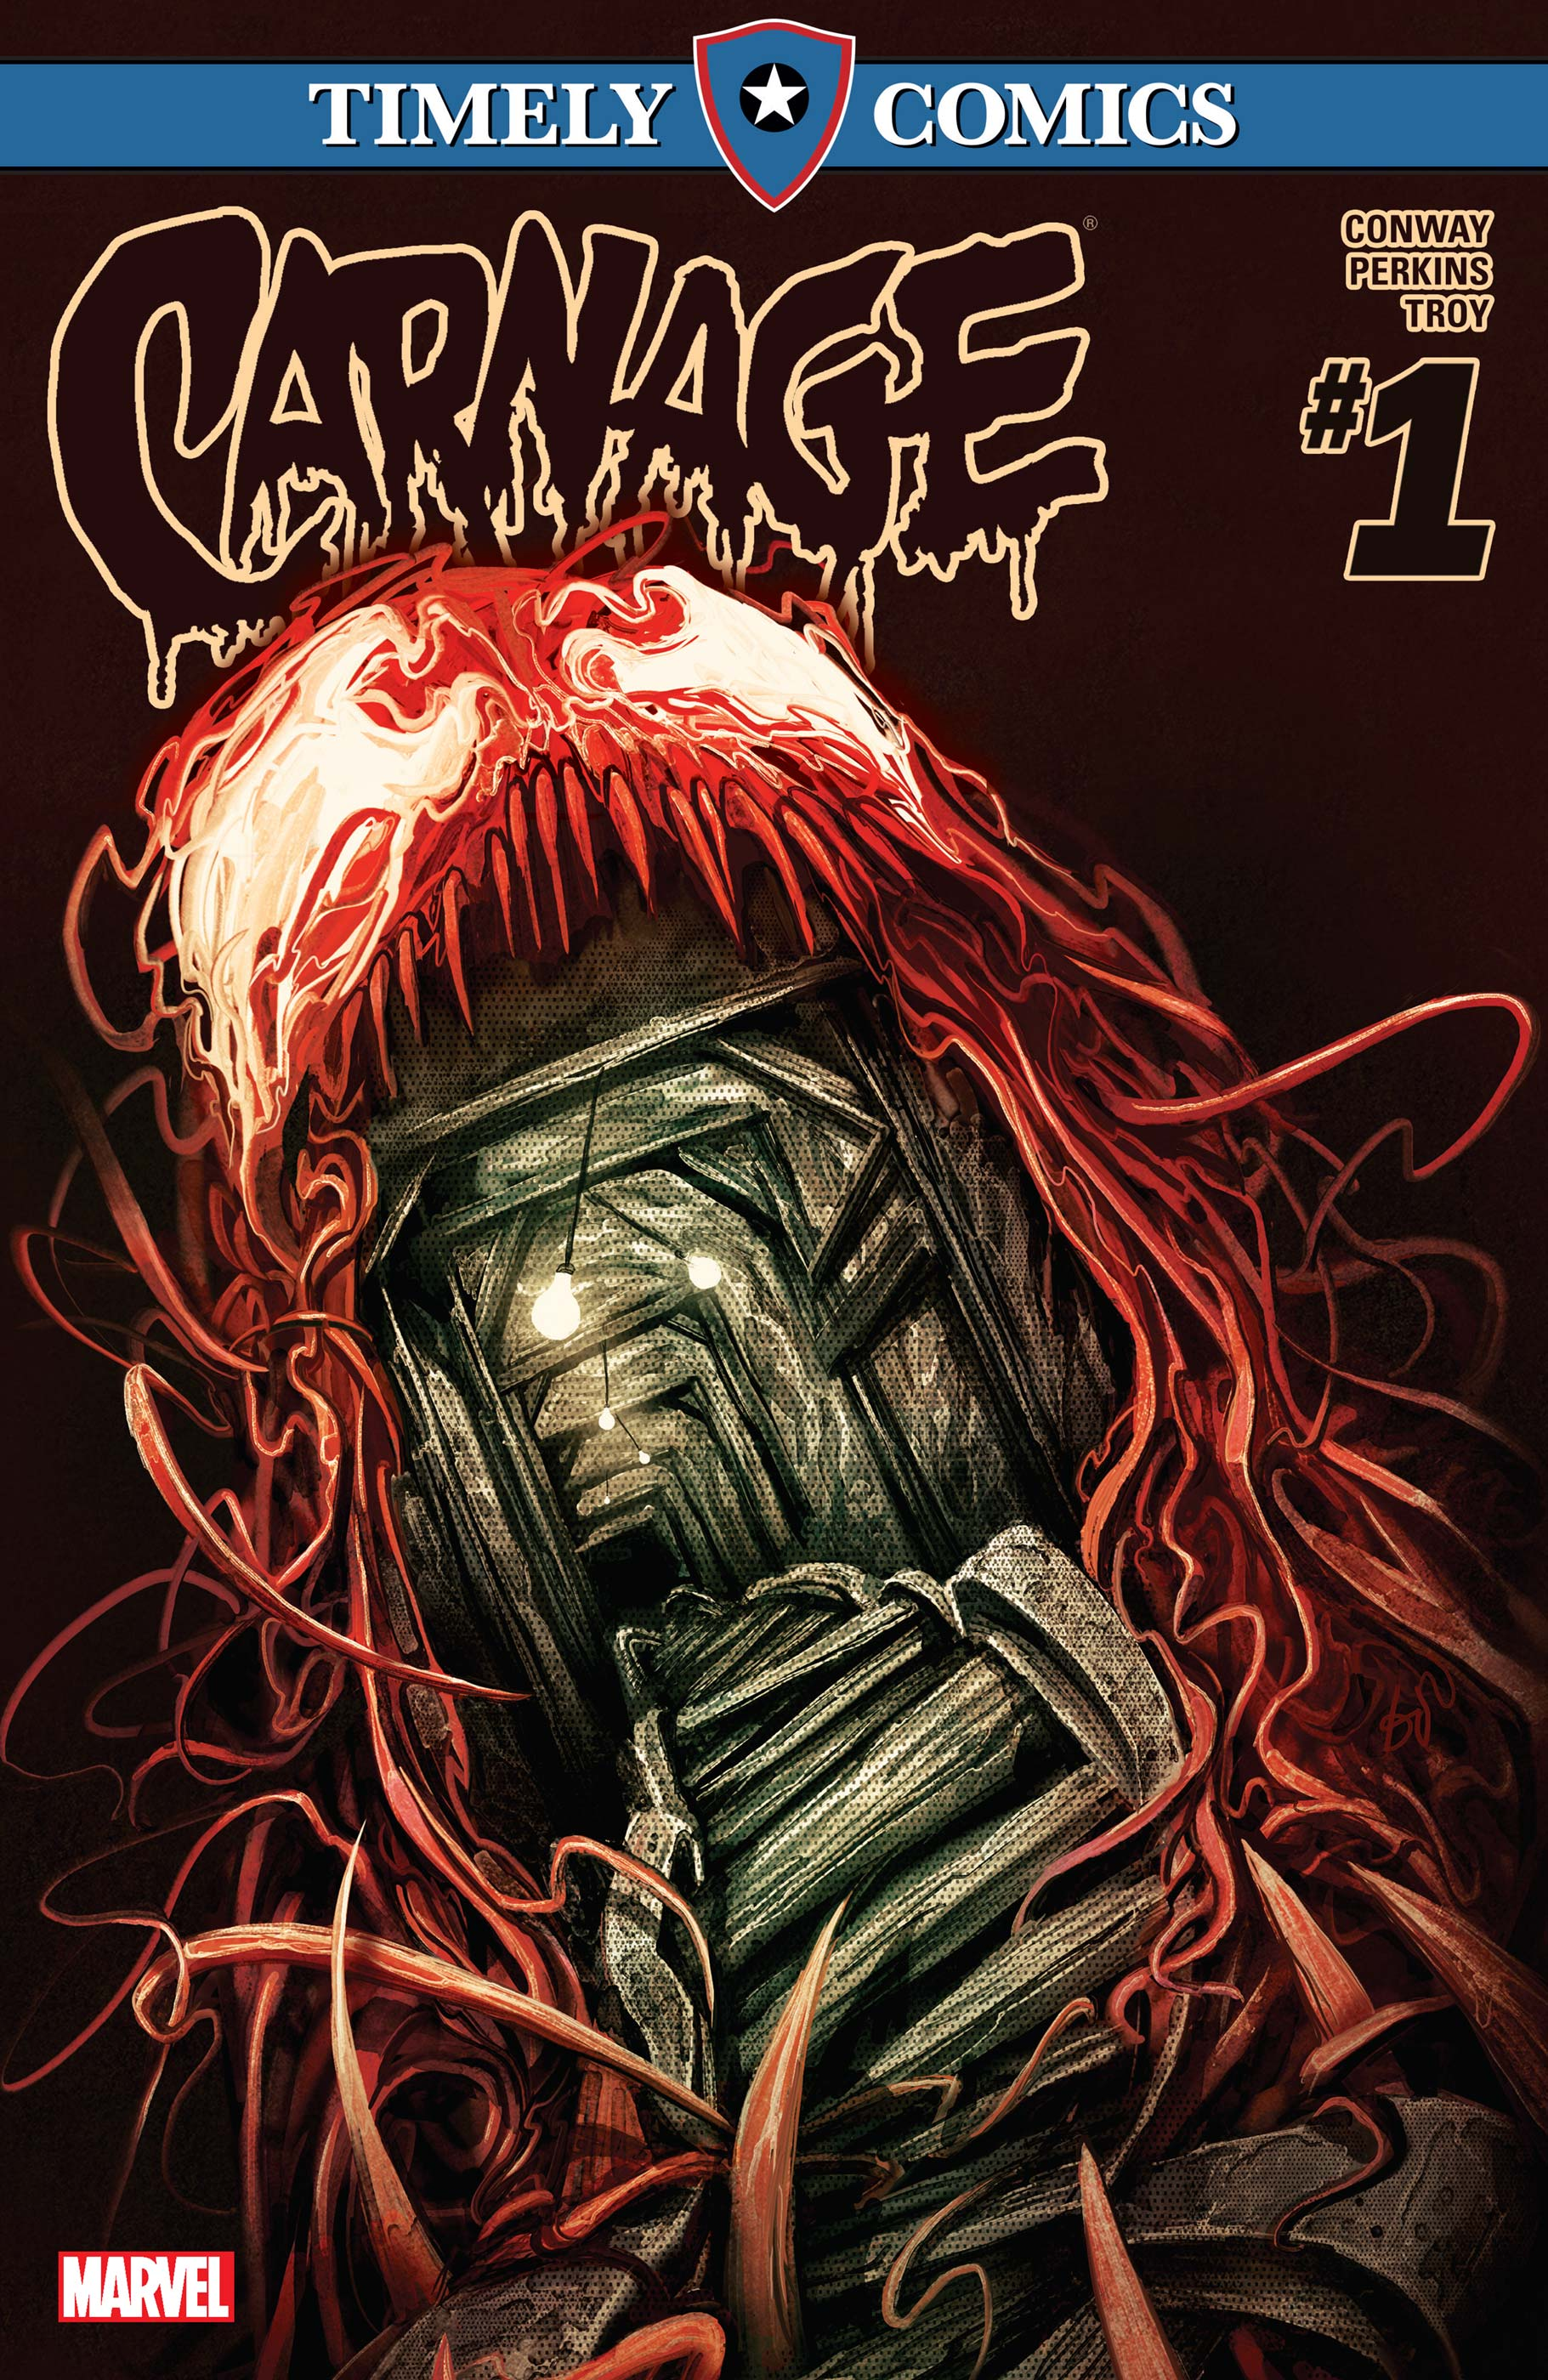 Timely Comics: Carnage (2016) #1